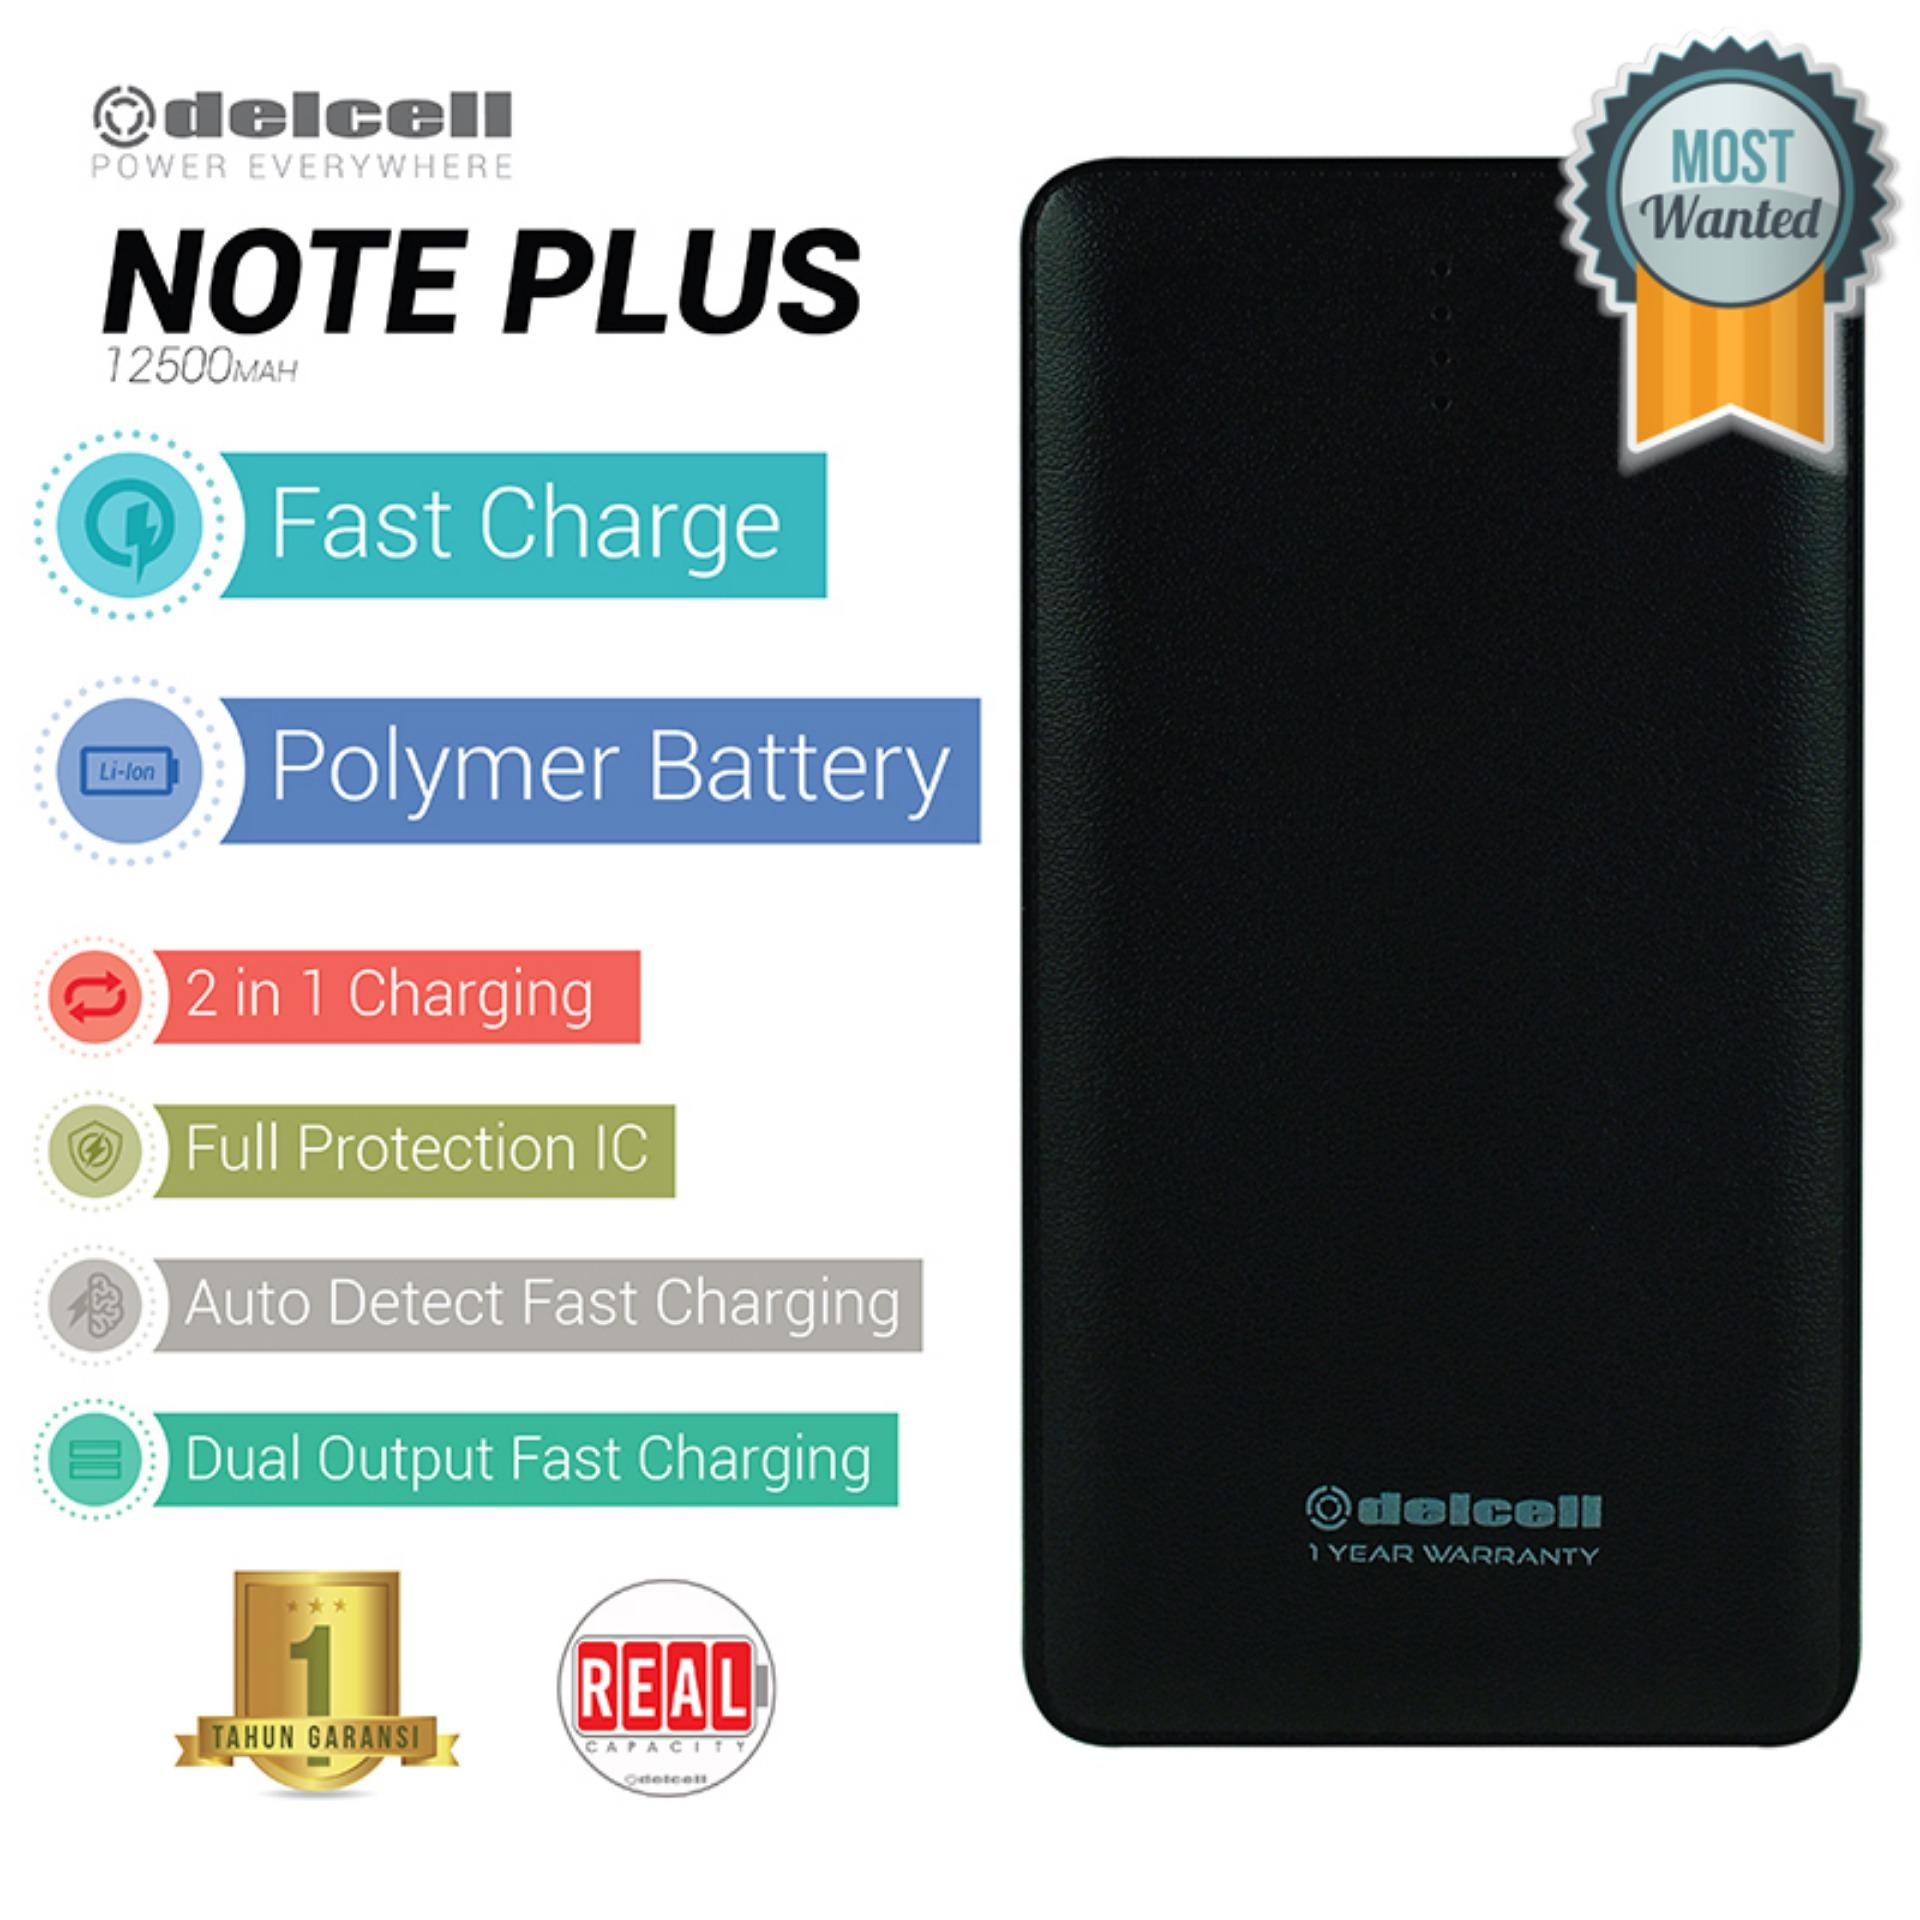 Delcell NOTE PLUS Powerbank Polymer Battery Real Capacity 12500mAh Fast Charging - Hitam